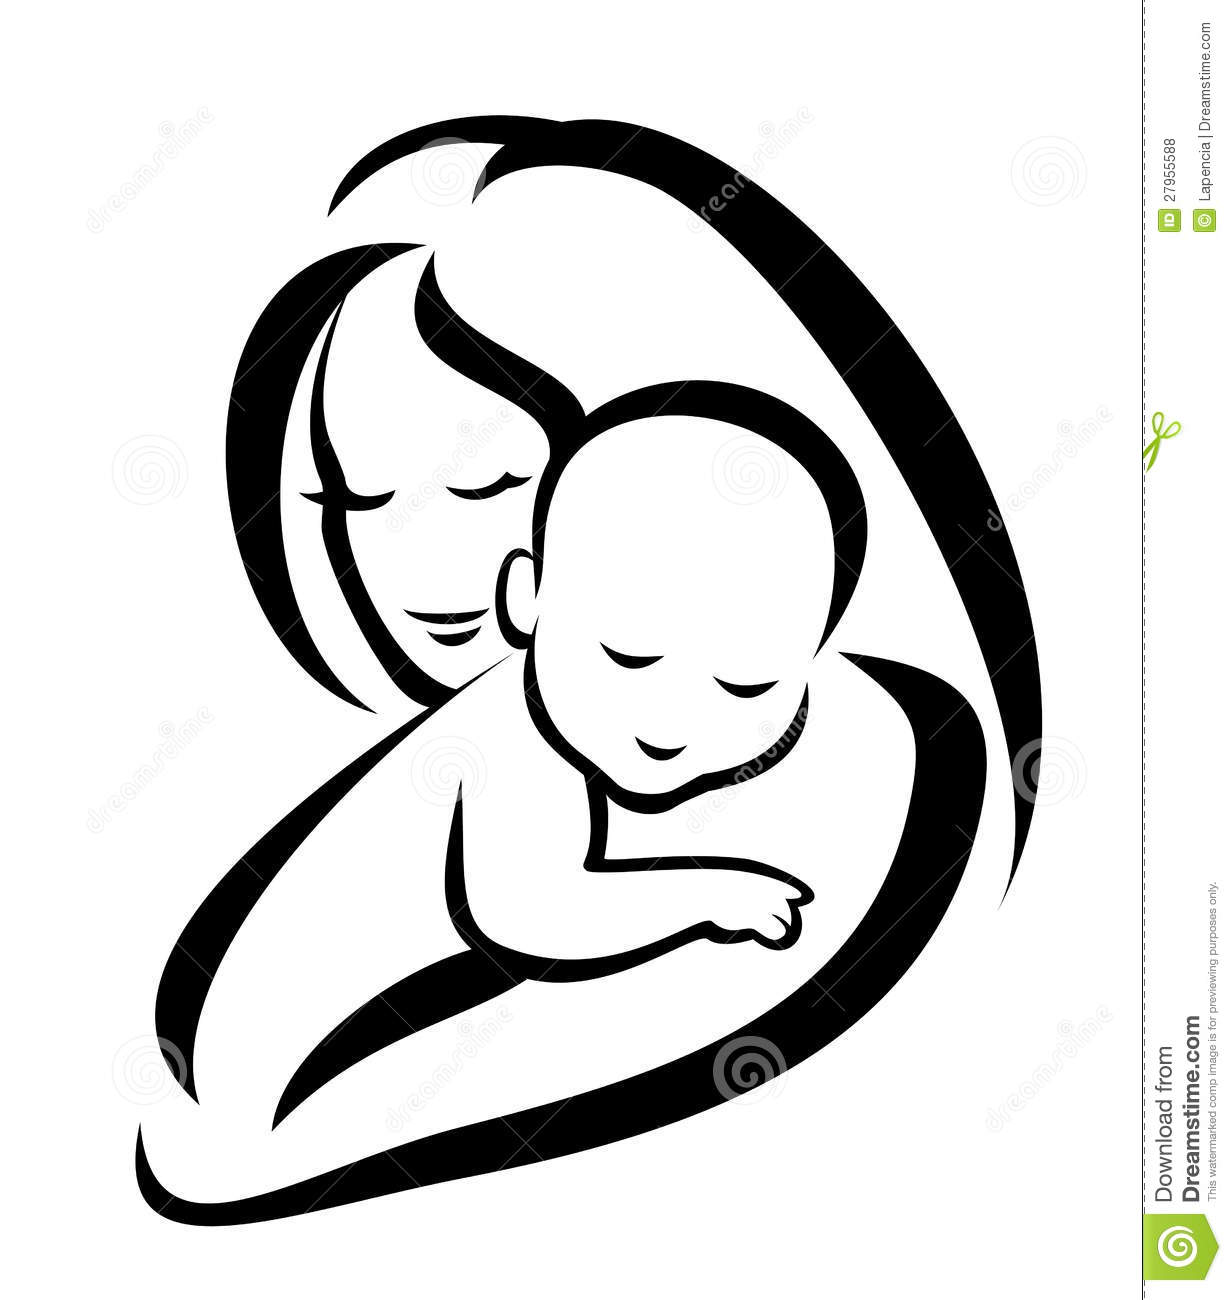 Mother And Baby Silhouette Royalty Free Stock Photos   Image  27955588